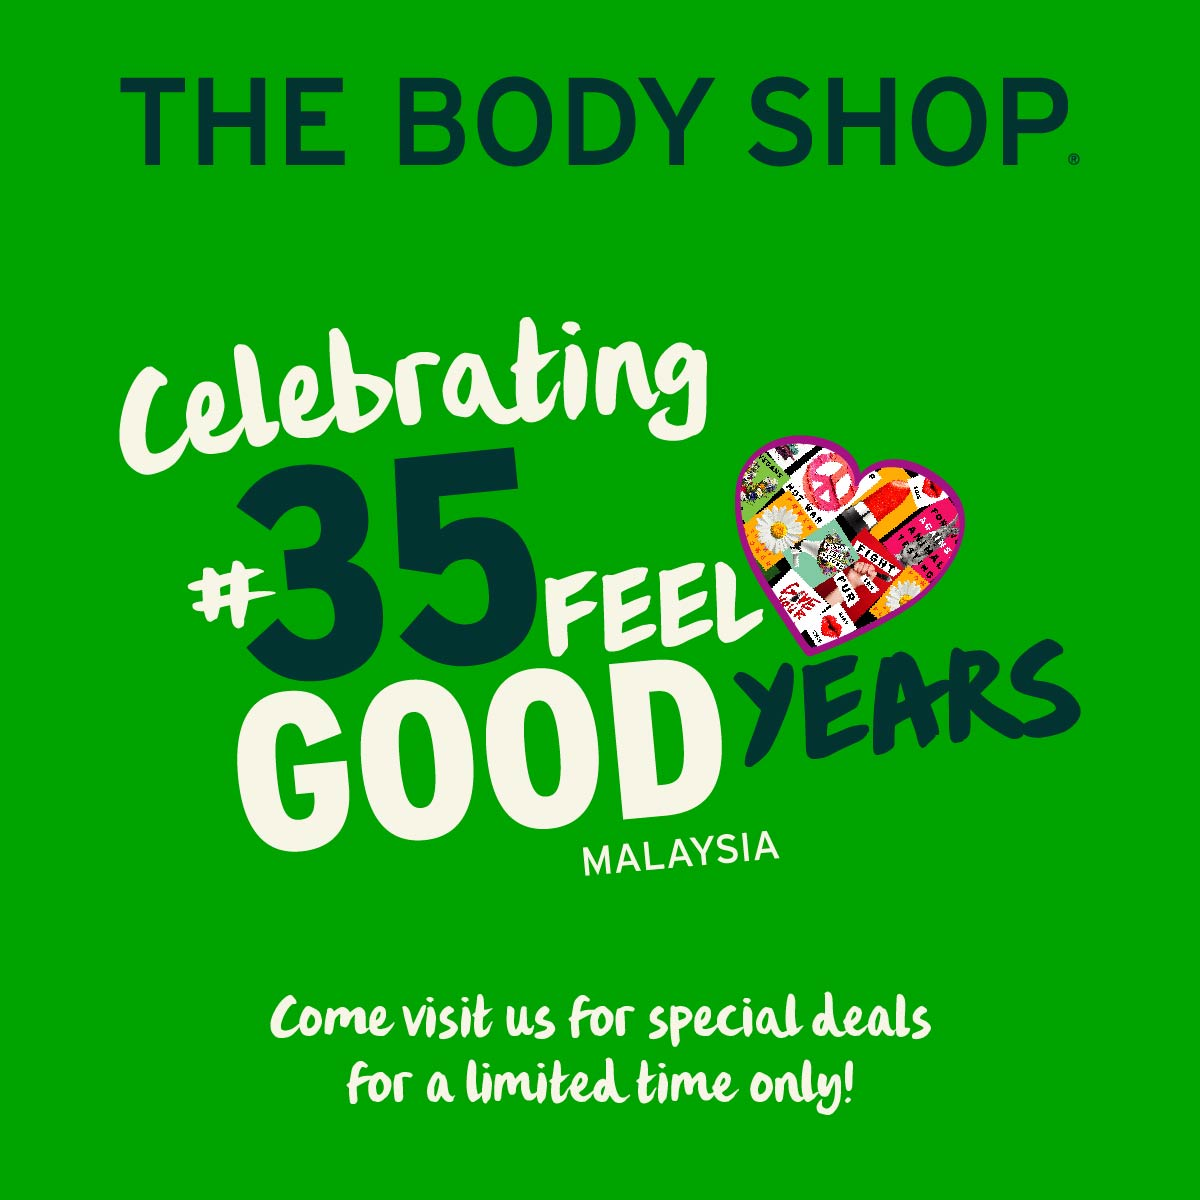 The Body Shop 35th Anniversary